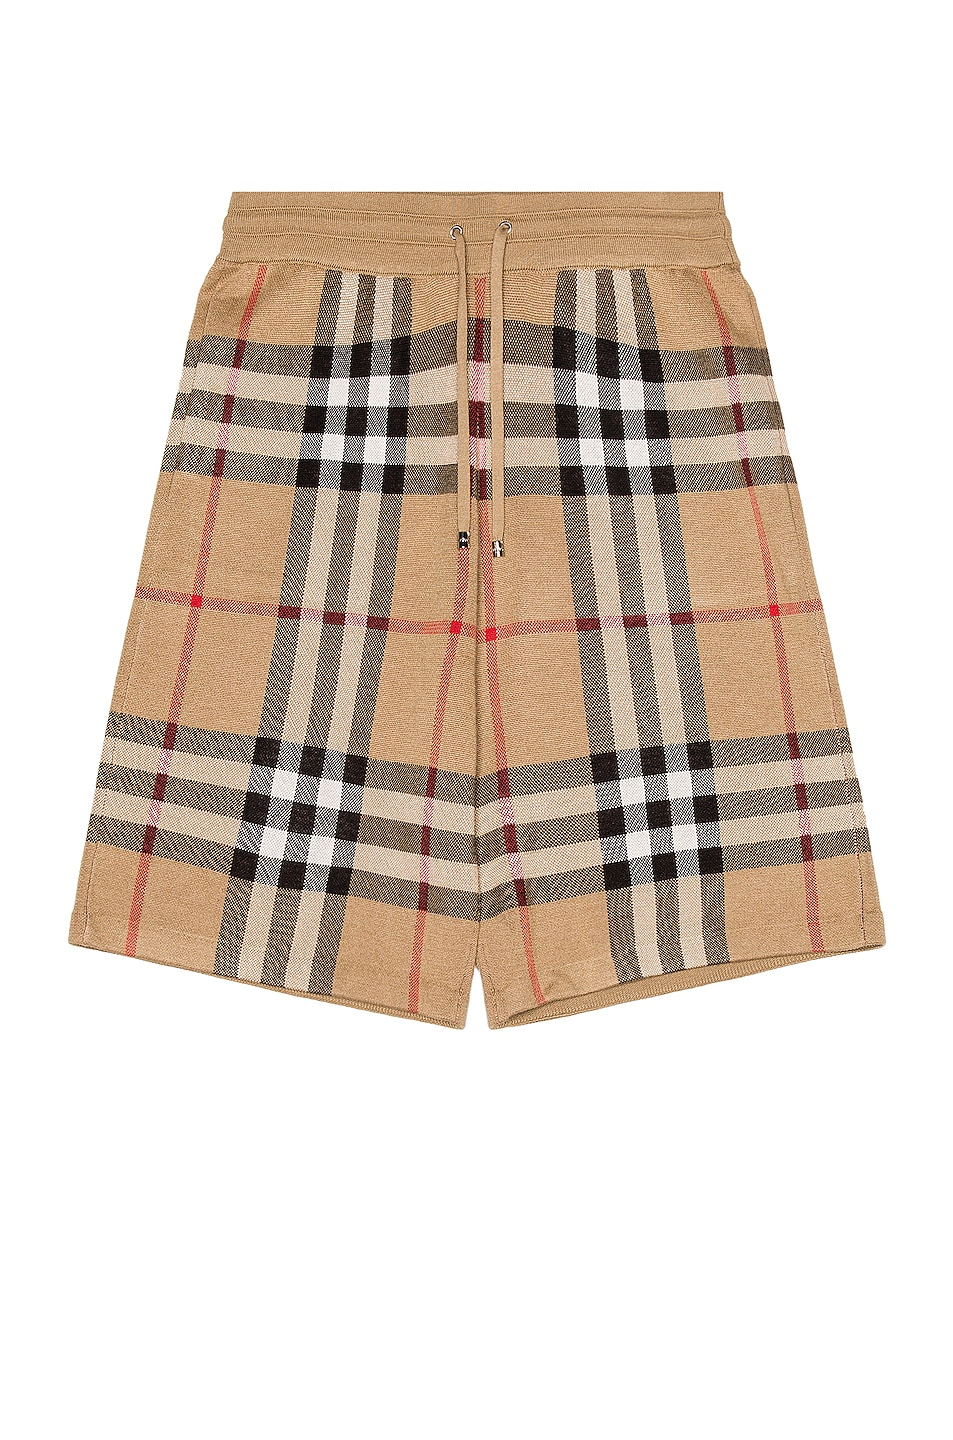 Image 1 of Burberry Weaver Shorts in Soft Fawn